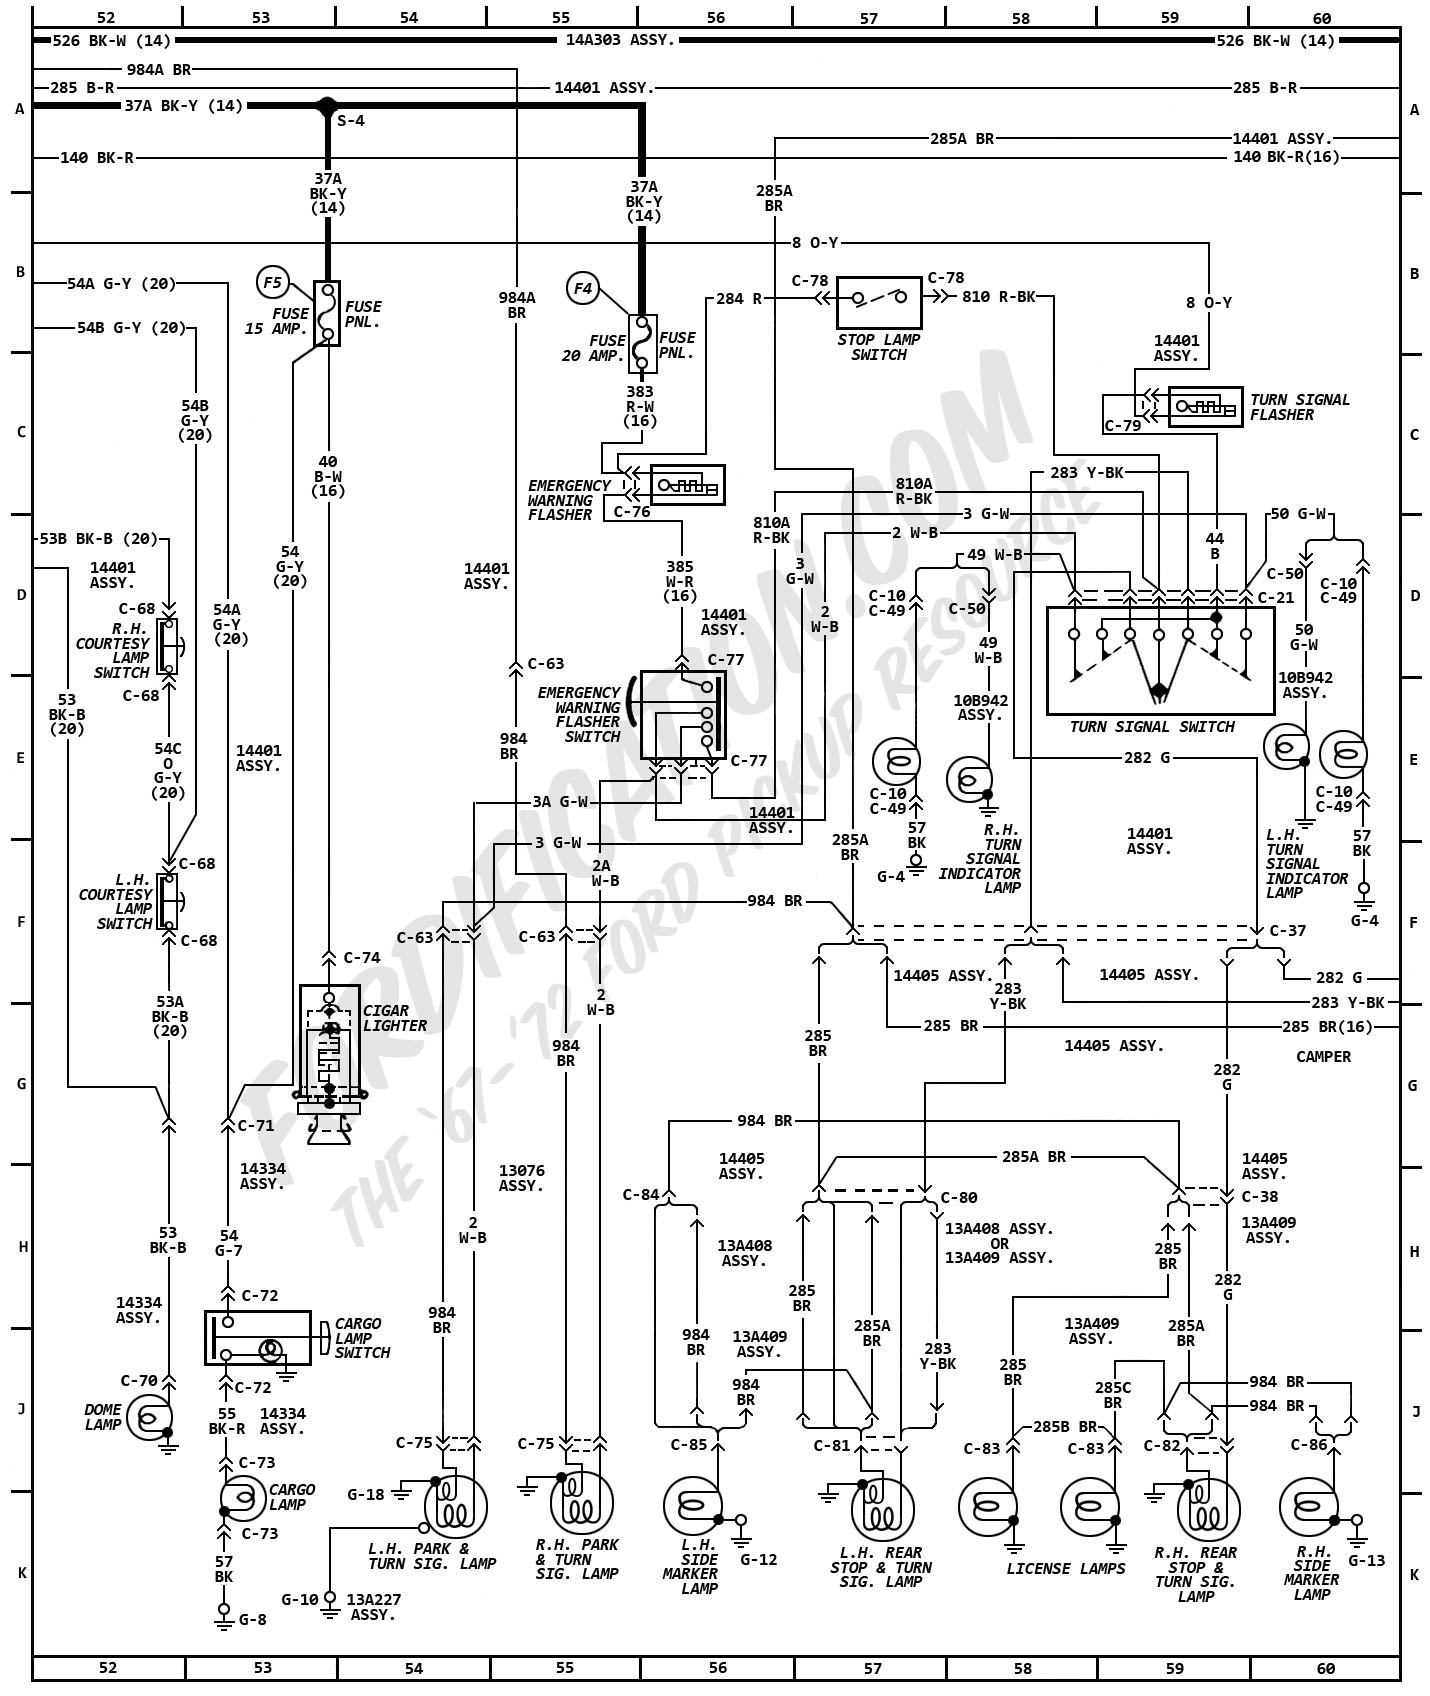 1972 ford f100 4x4 wiring diagram